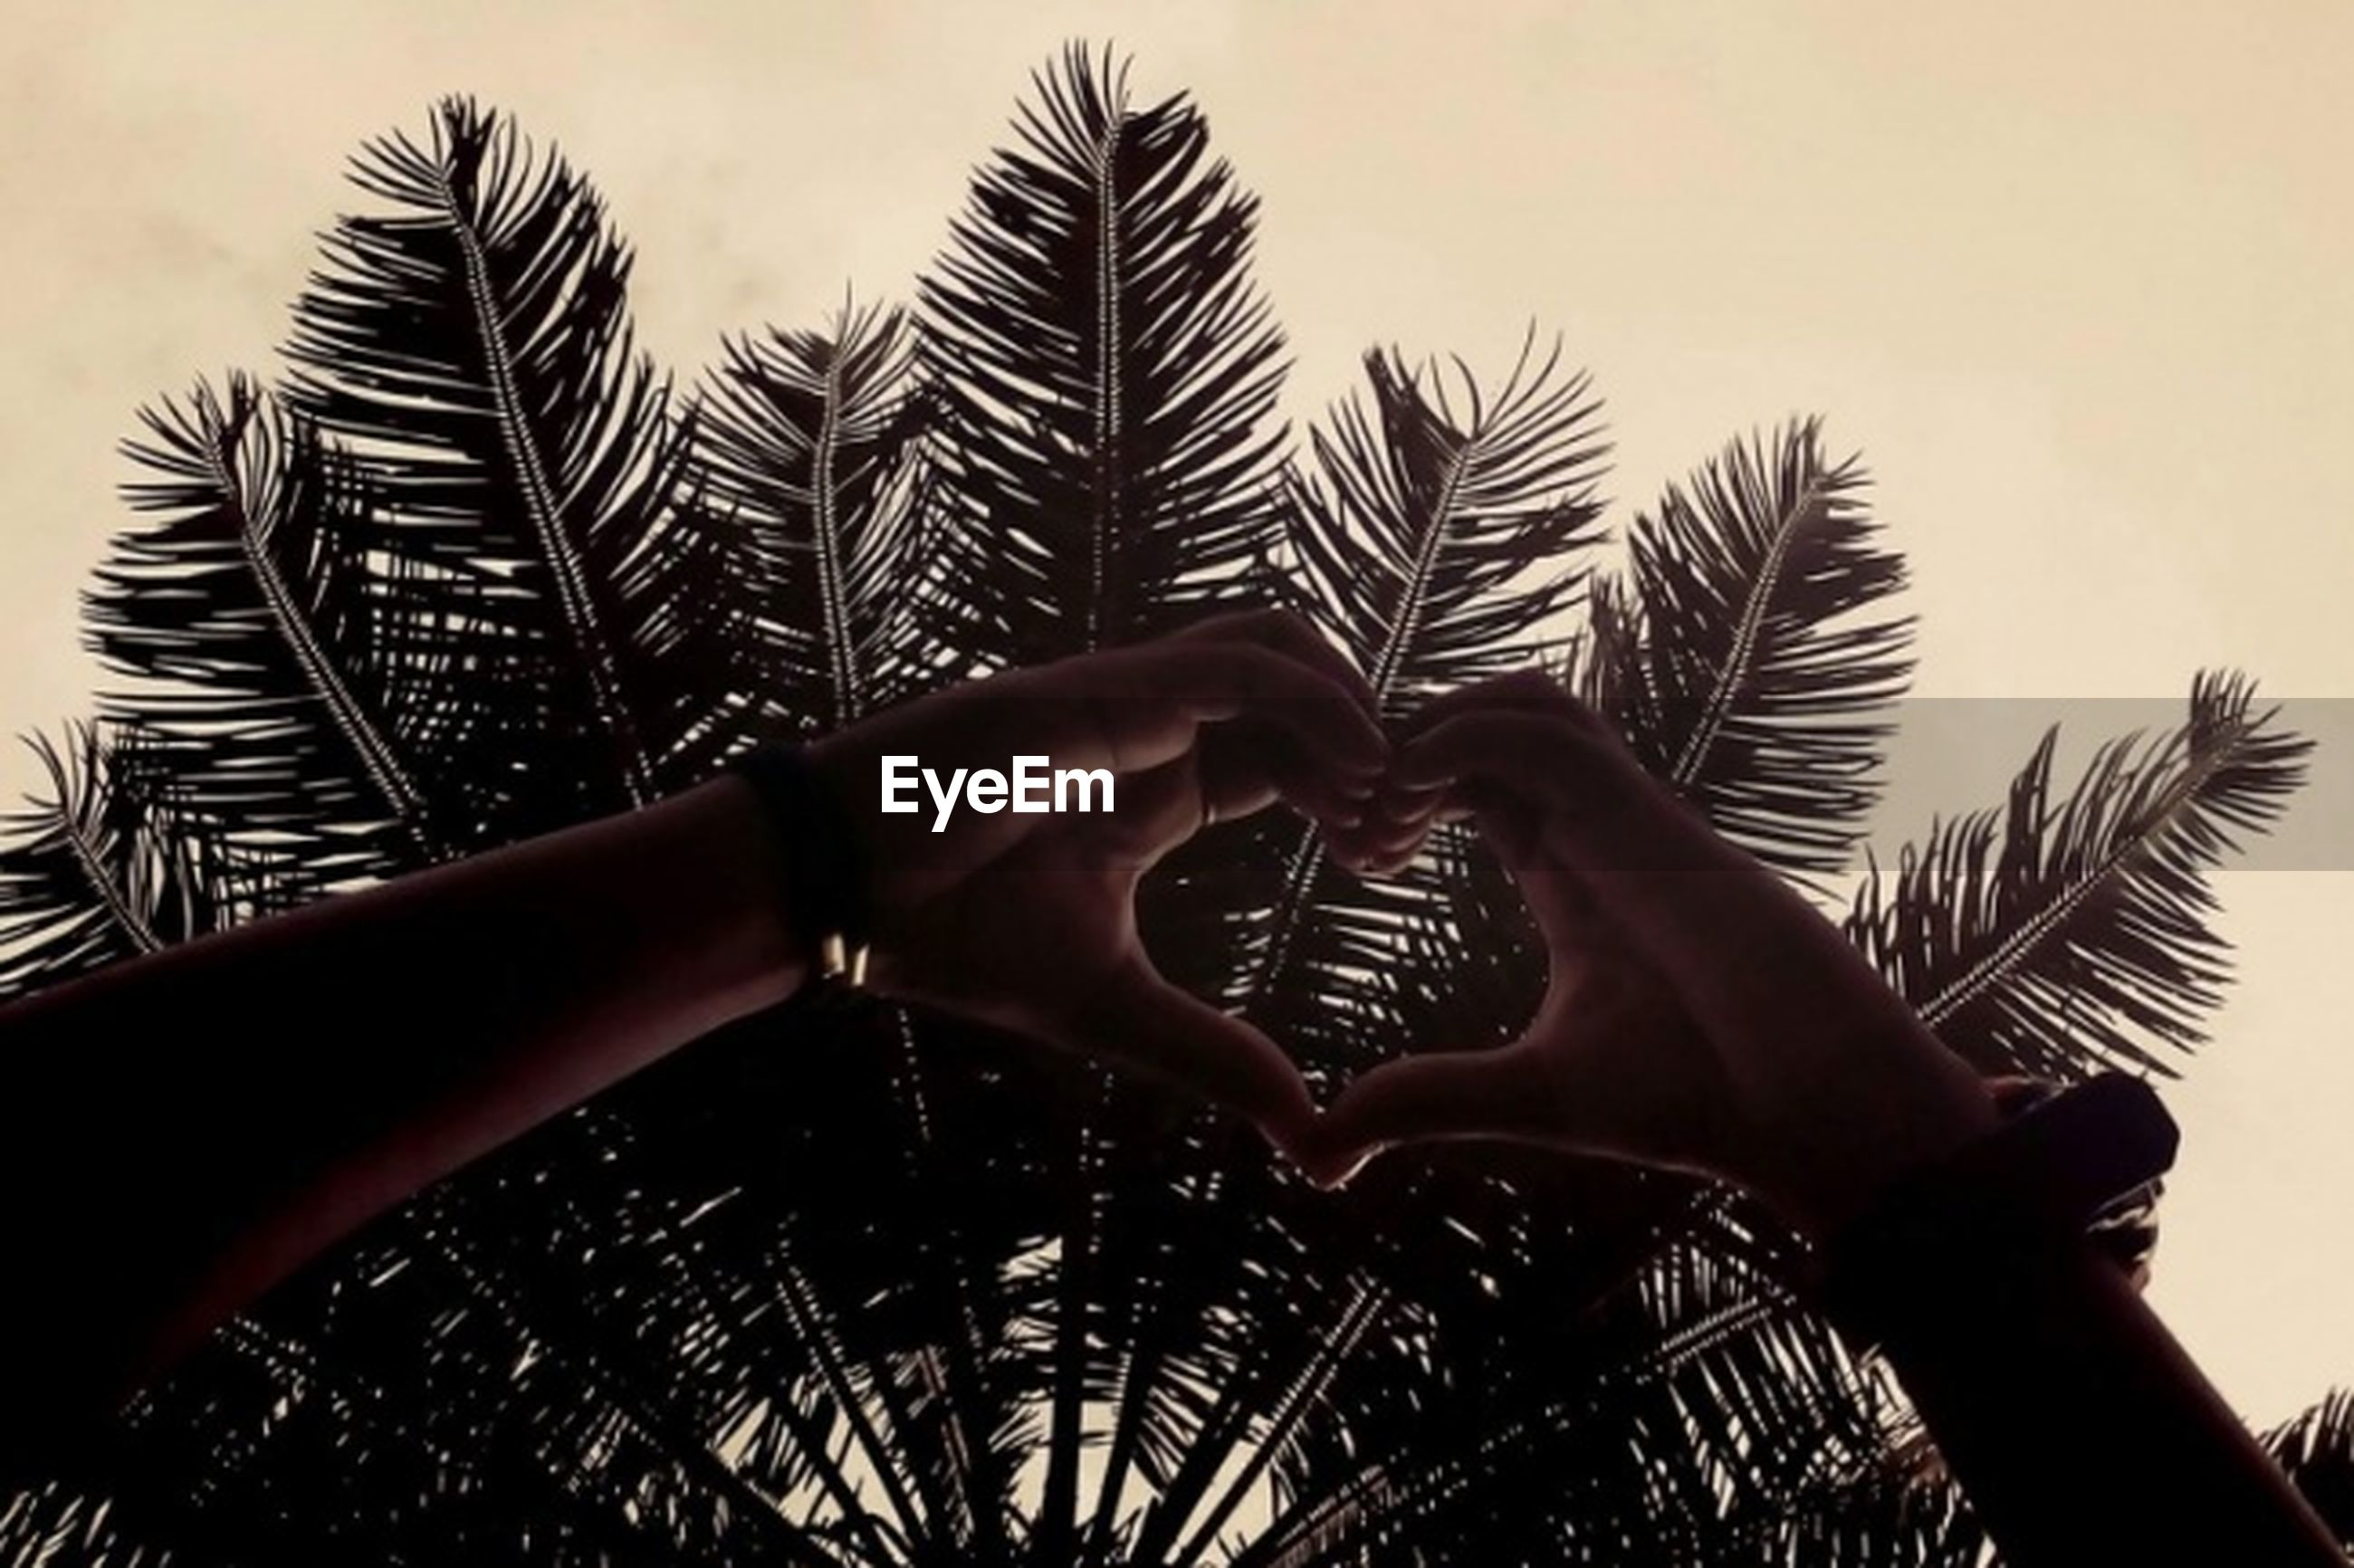 human hand, human body part, palm tree, one person, real people, close-up, outdoors, tree, palm, day, sky, nature, people